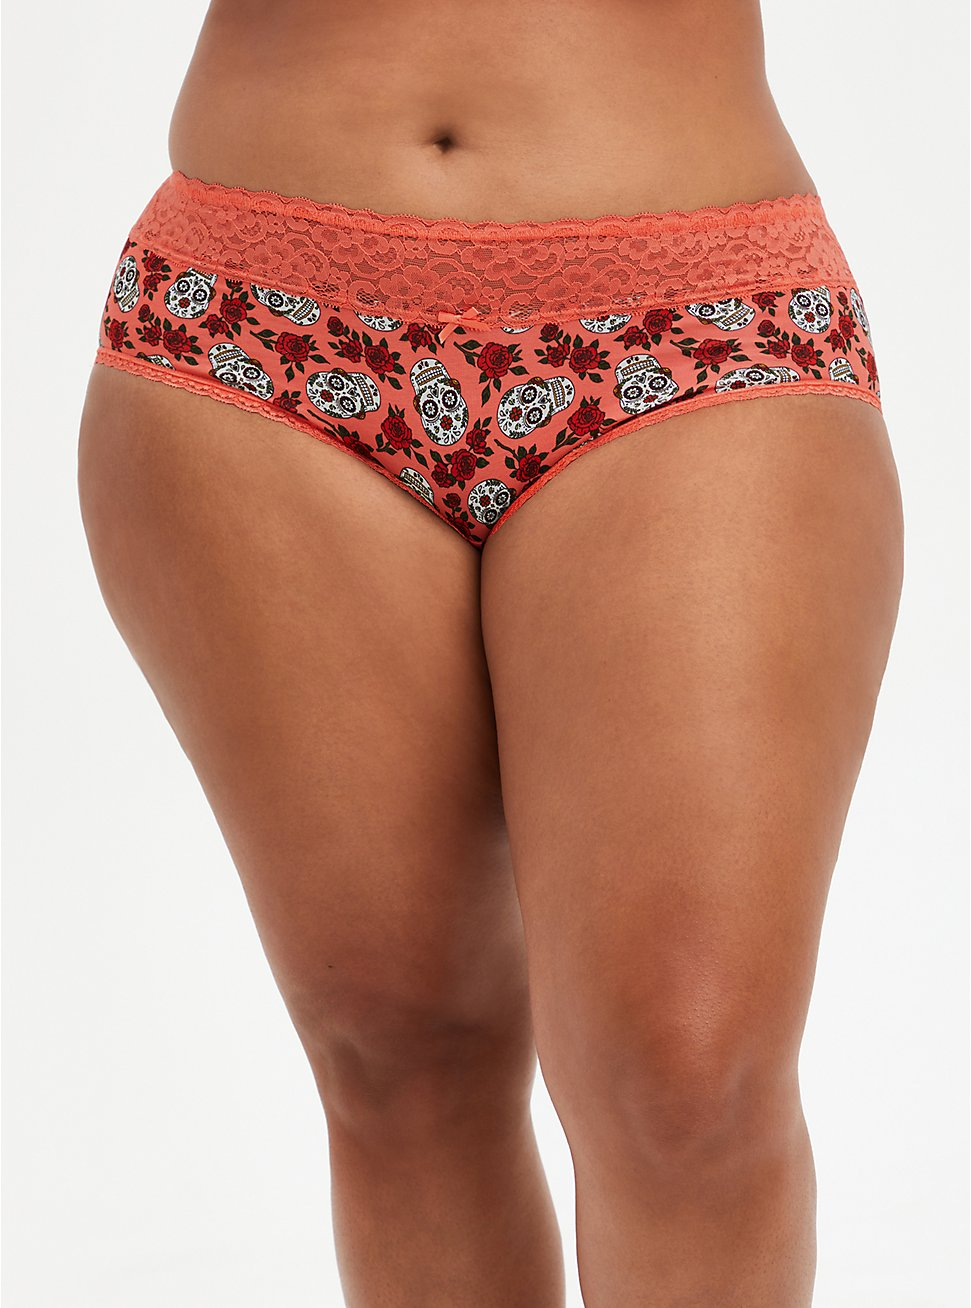 Plus Size Coral Skull Floral Wide Lace Cotton Cheeky Panty, DITSY MUERTOS CORAL, hi-res